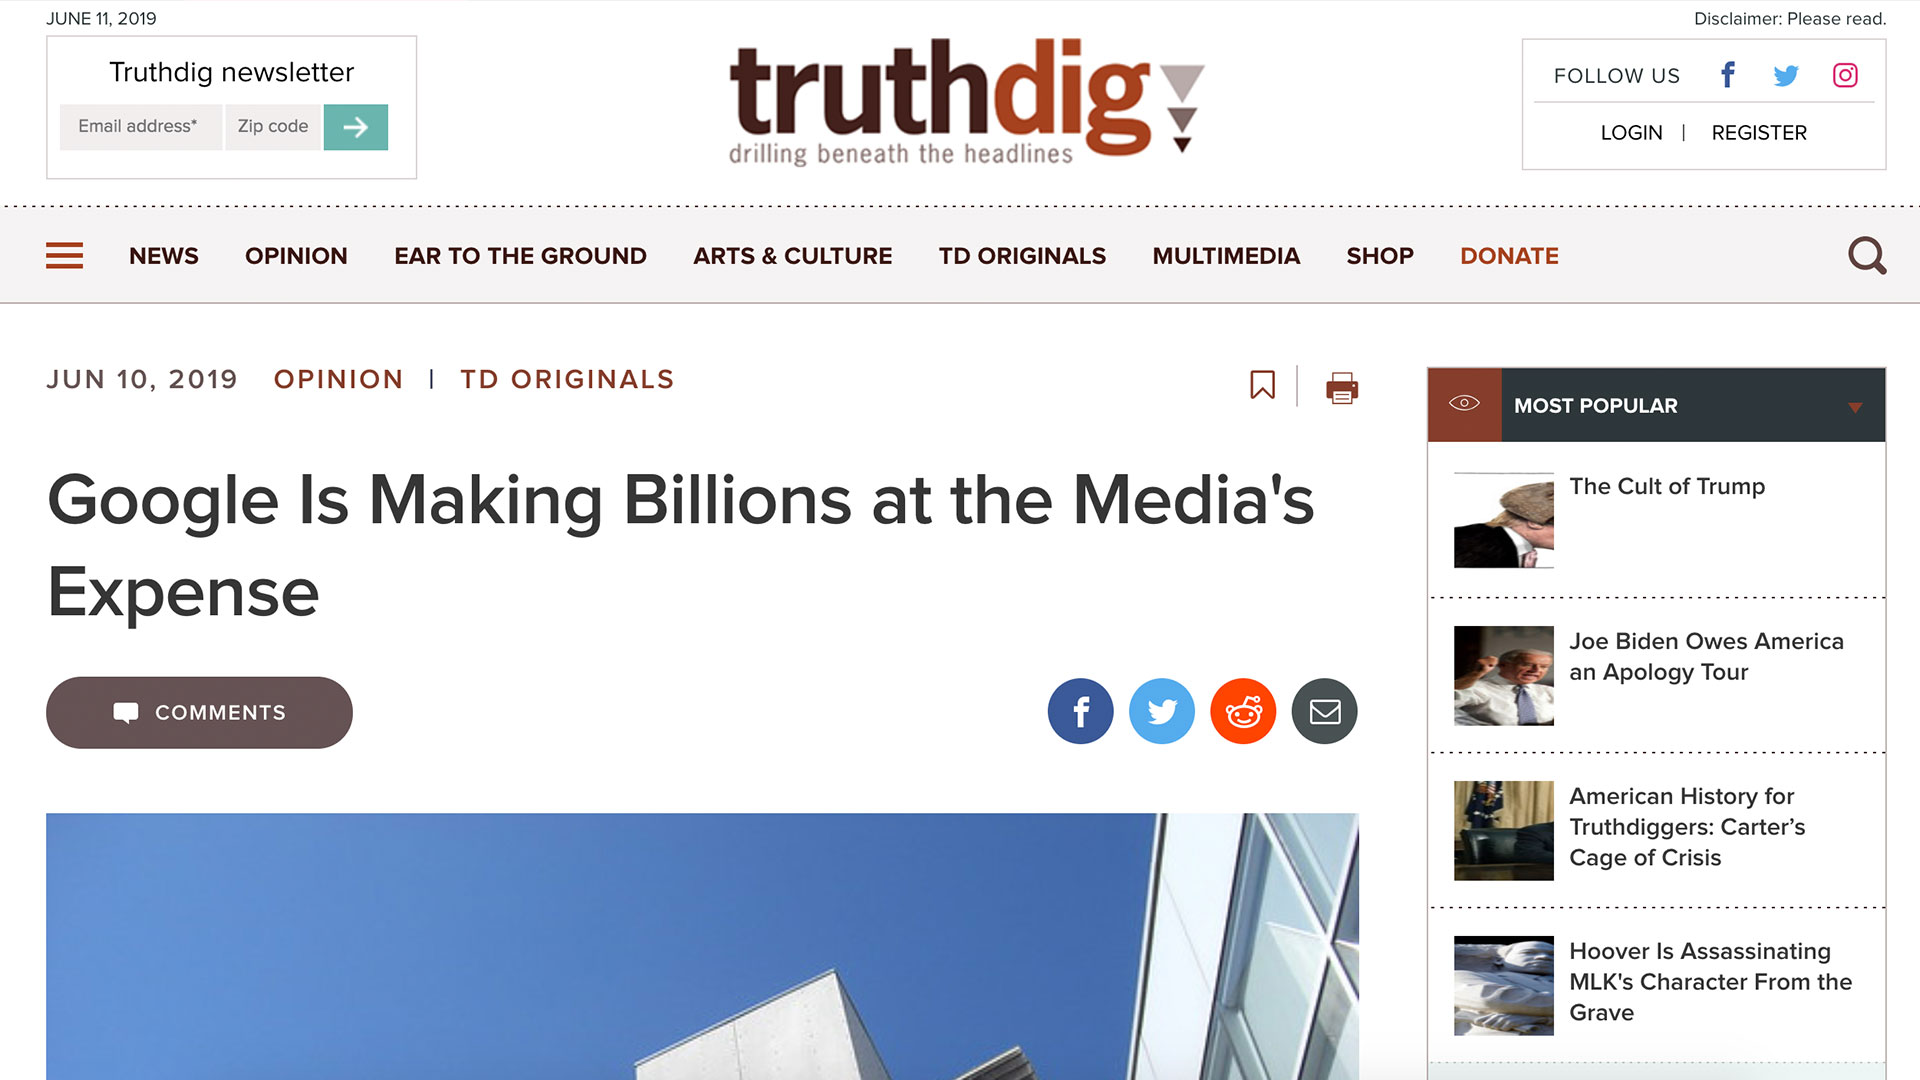 Fairness Rocks News Google Is Making Billions at the Media's Expense